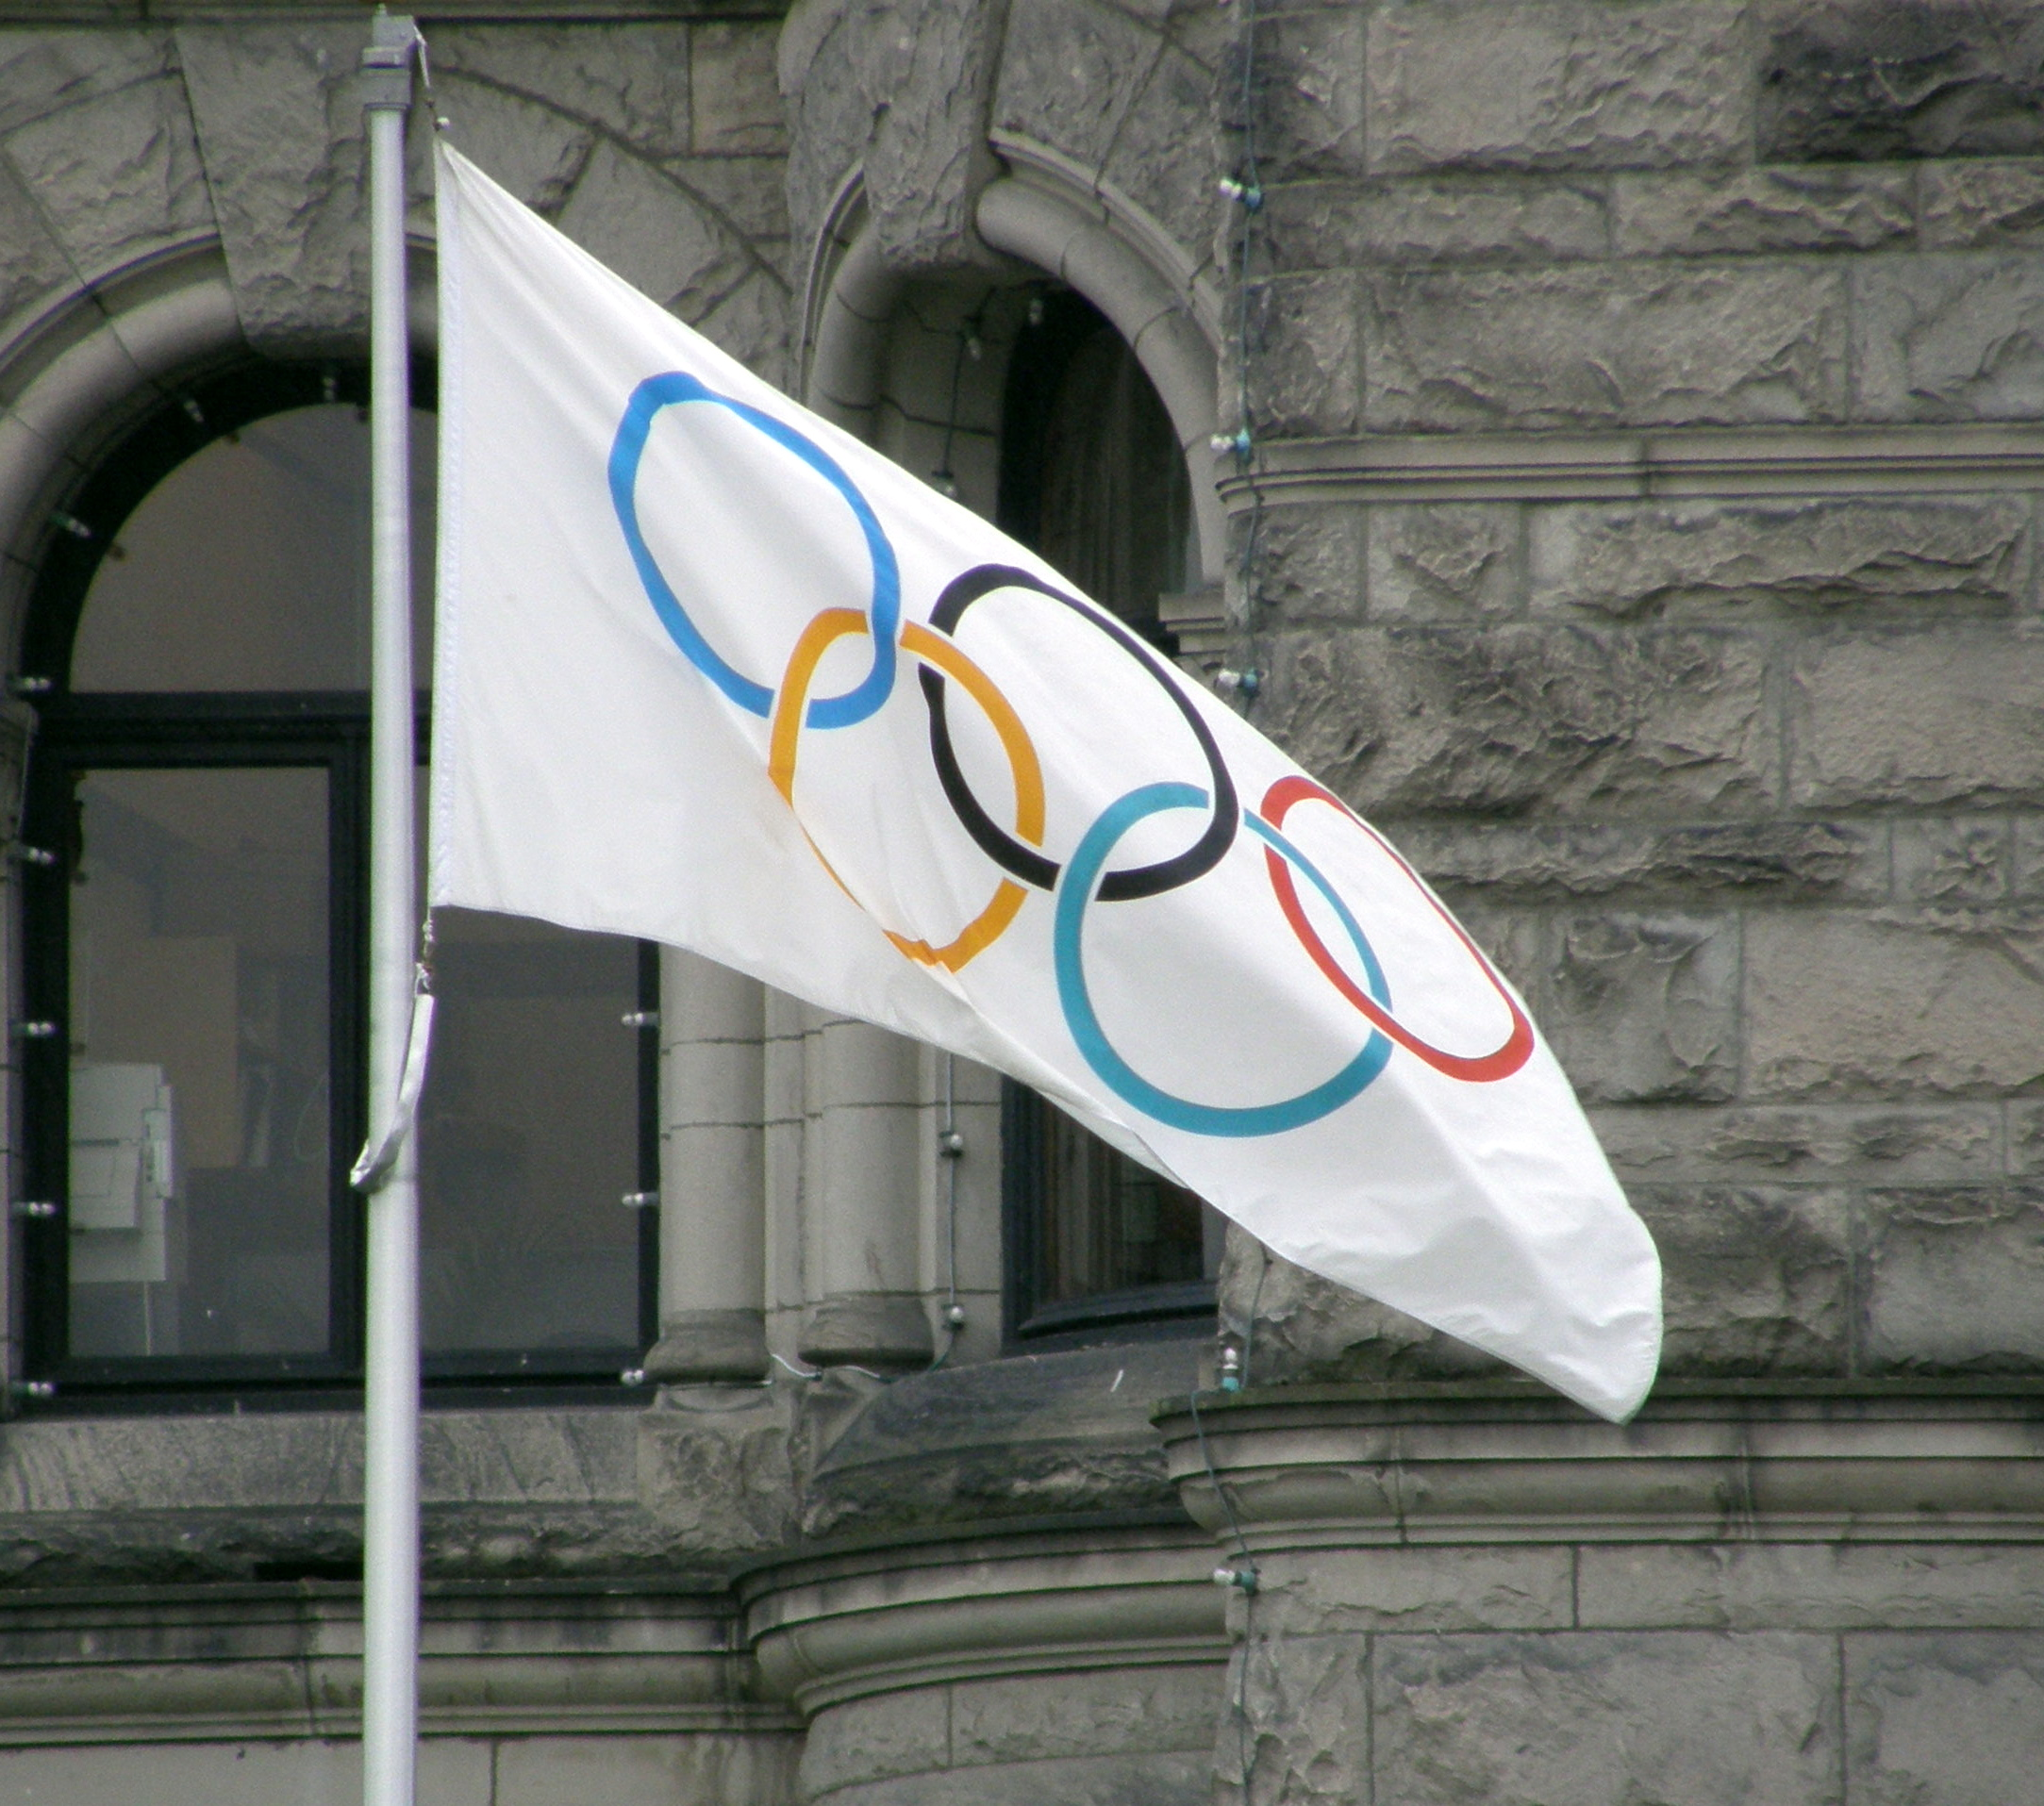 The Flags Of The Olympics Gettysburg Flag Works Bloggettysburg